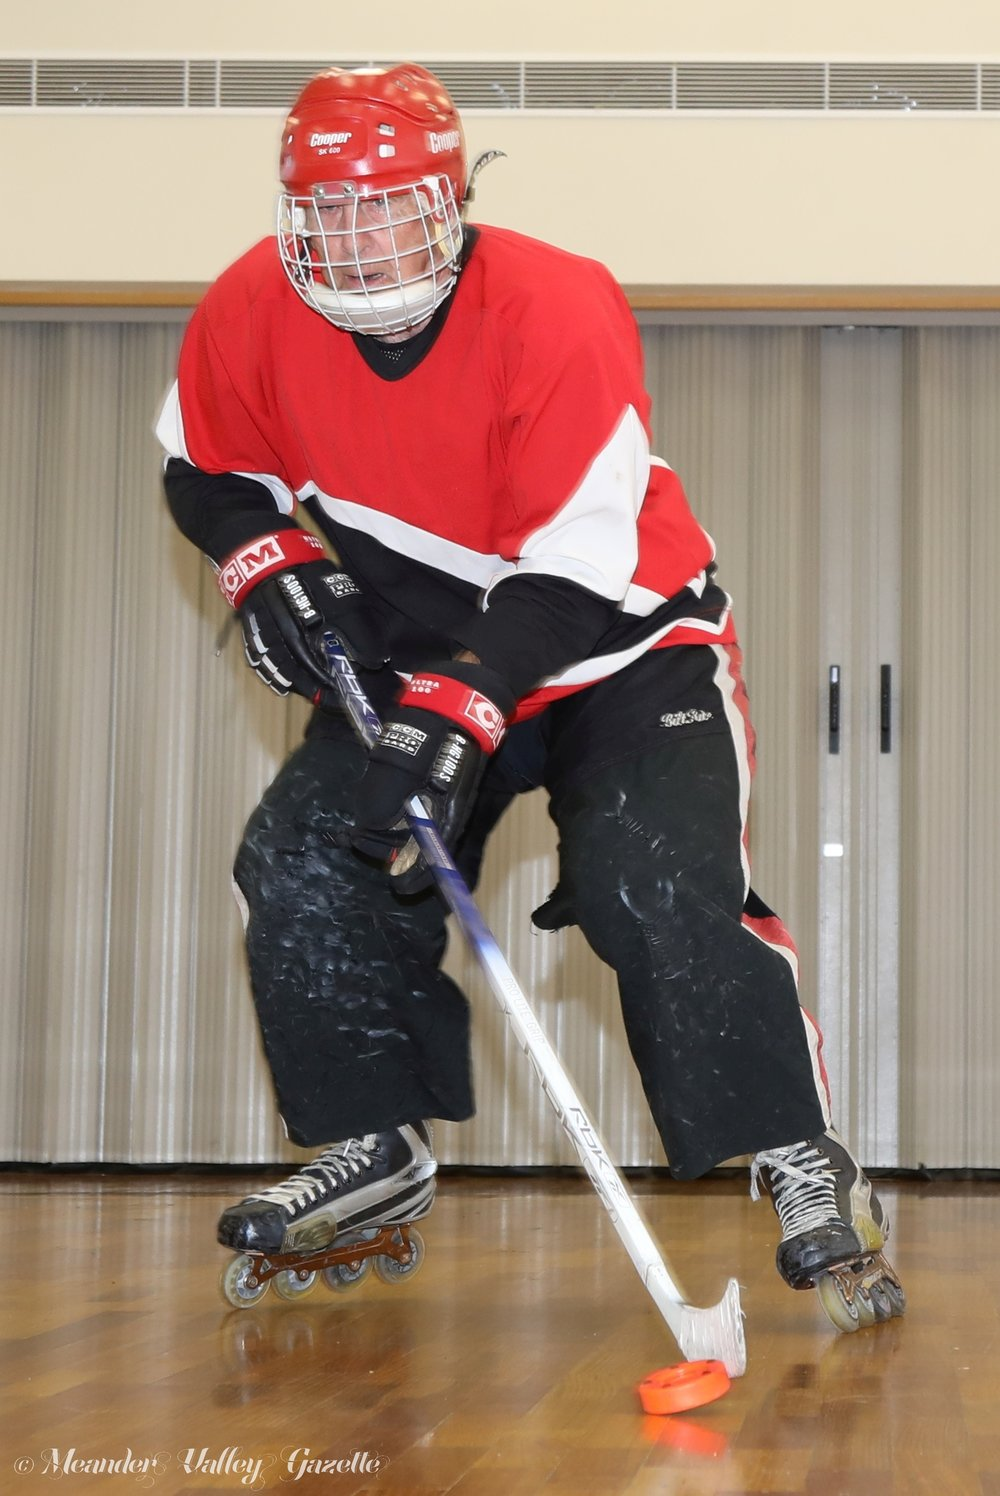 Skater Peter Ashton promoting his lifelong Sport of 'Inline Hockey'.